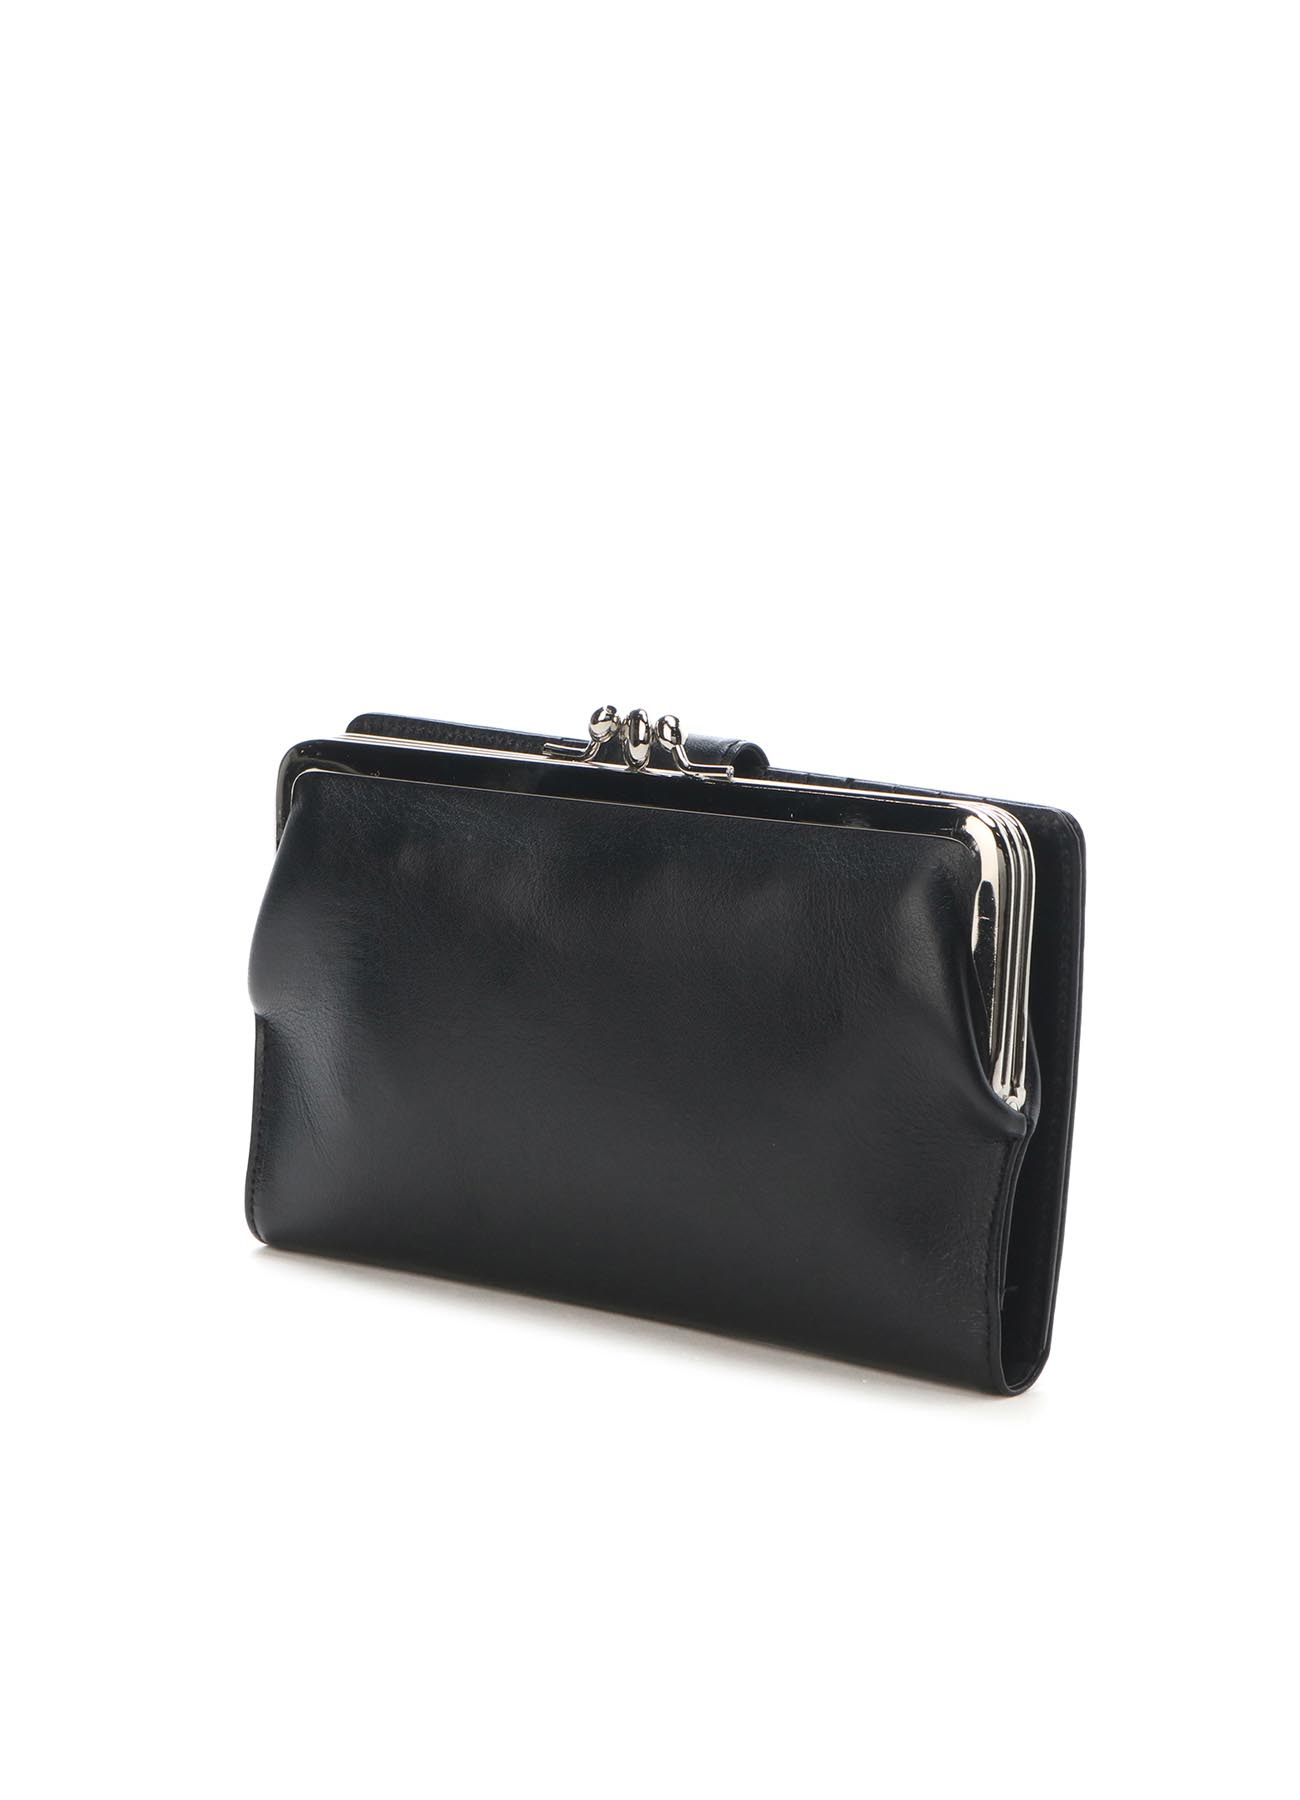 SEMI GLOSS LEATHER CLASP LONG WALLET